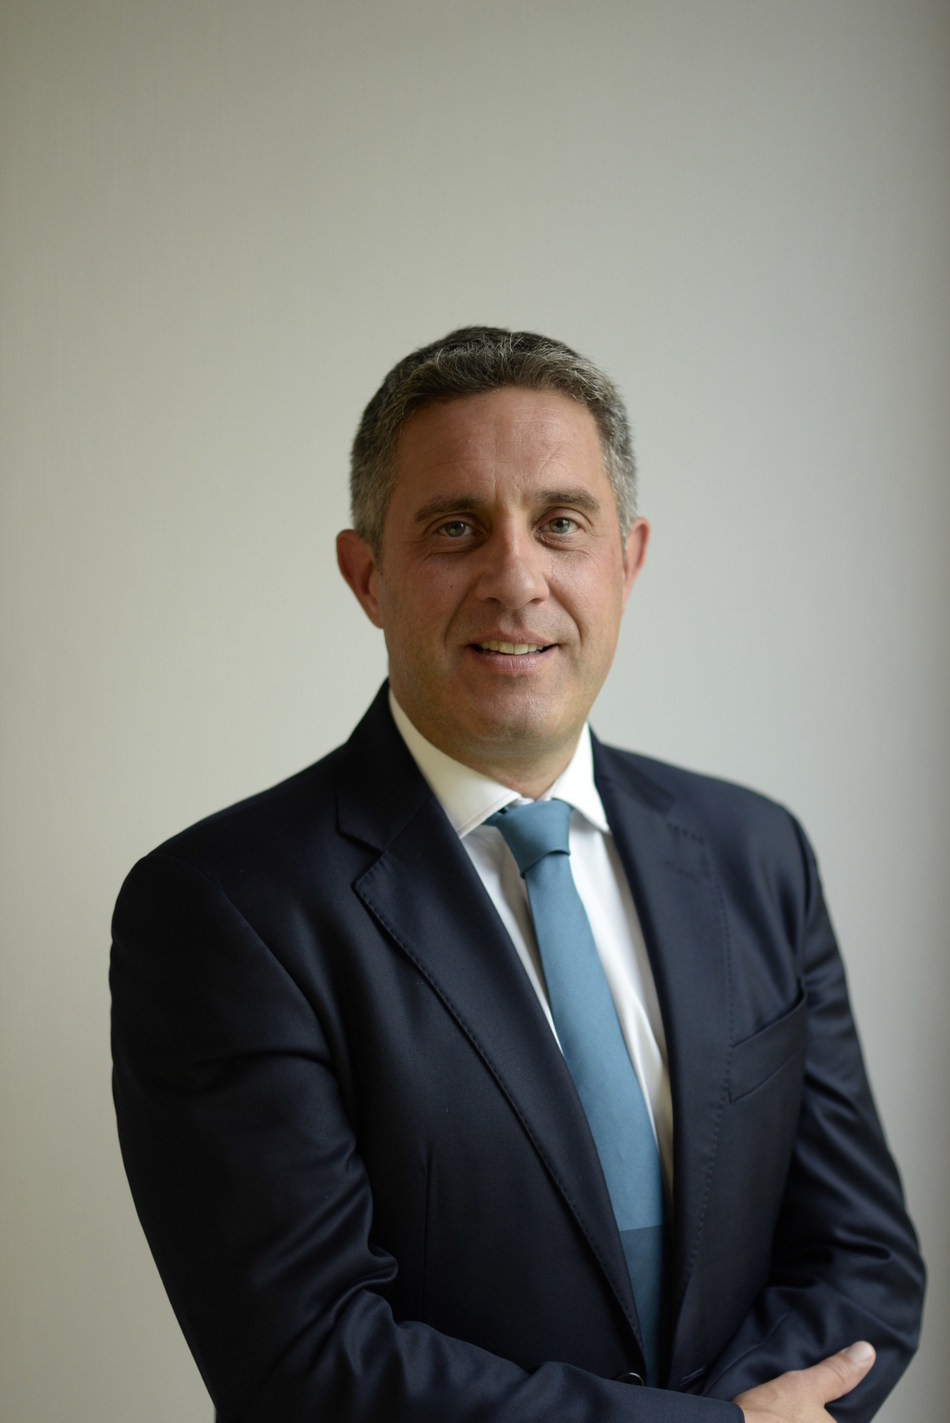 Nigel Lewis, currently Caterpillar vice president of Global Aftermarket Solutions Division, will now have responsibility for the Europe, Africa and Middle East Distribution Services Division.